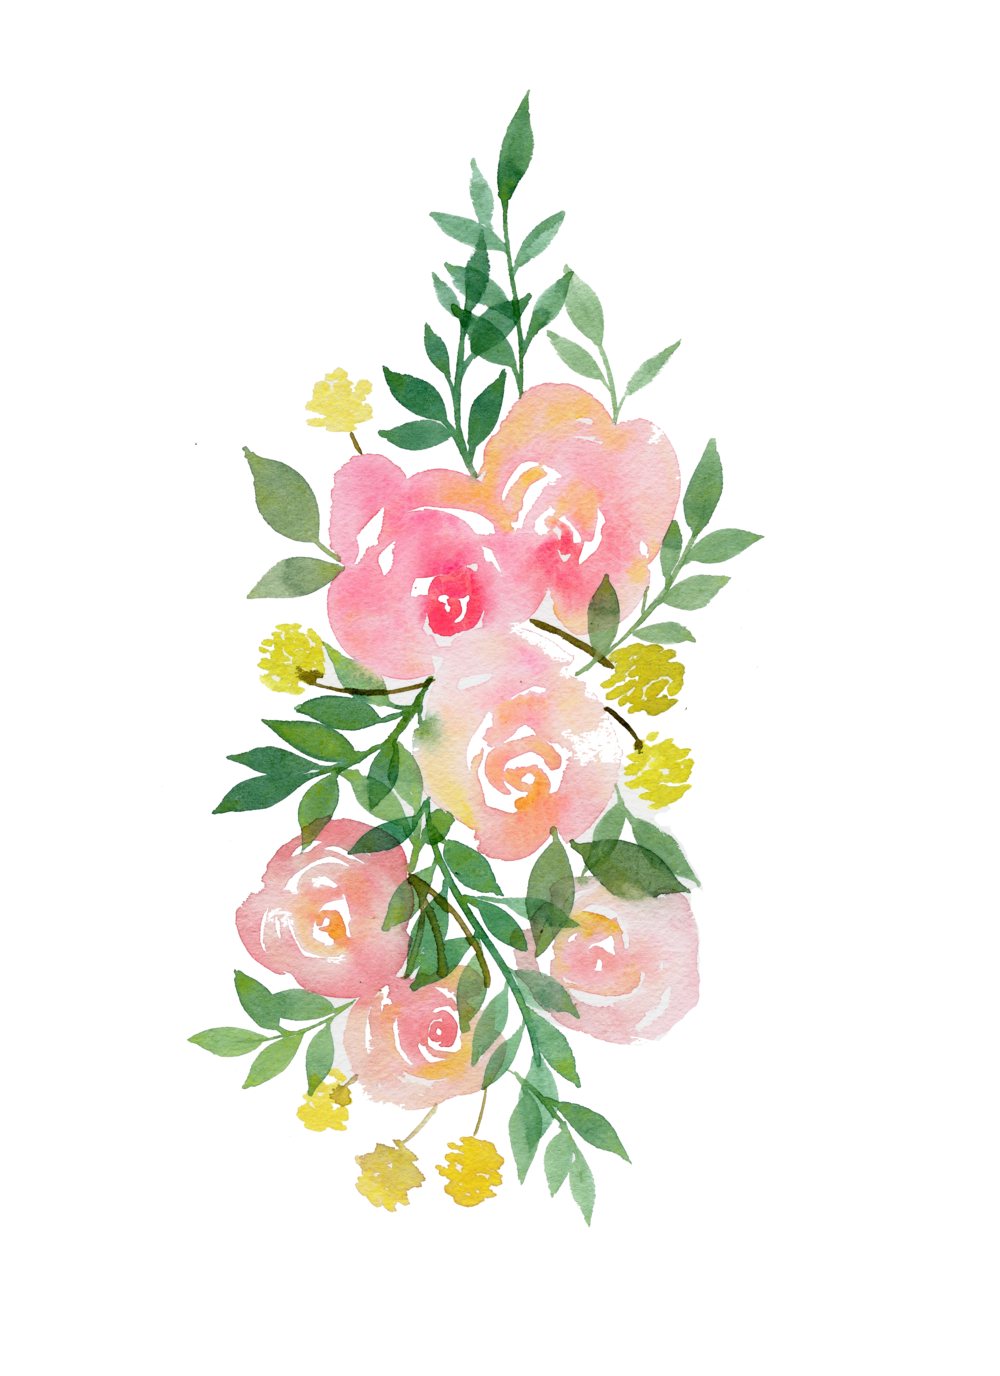 Pink watercolor flower png. Image alanisidethingy animal jam